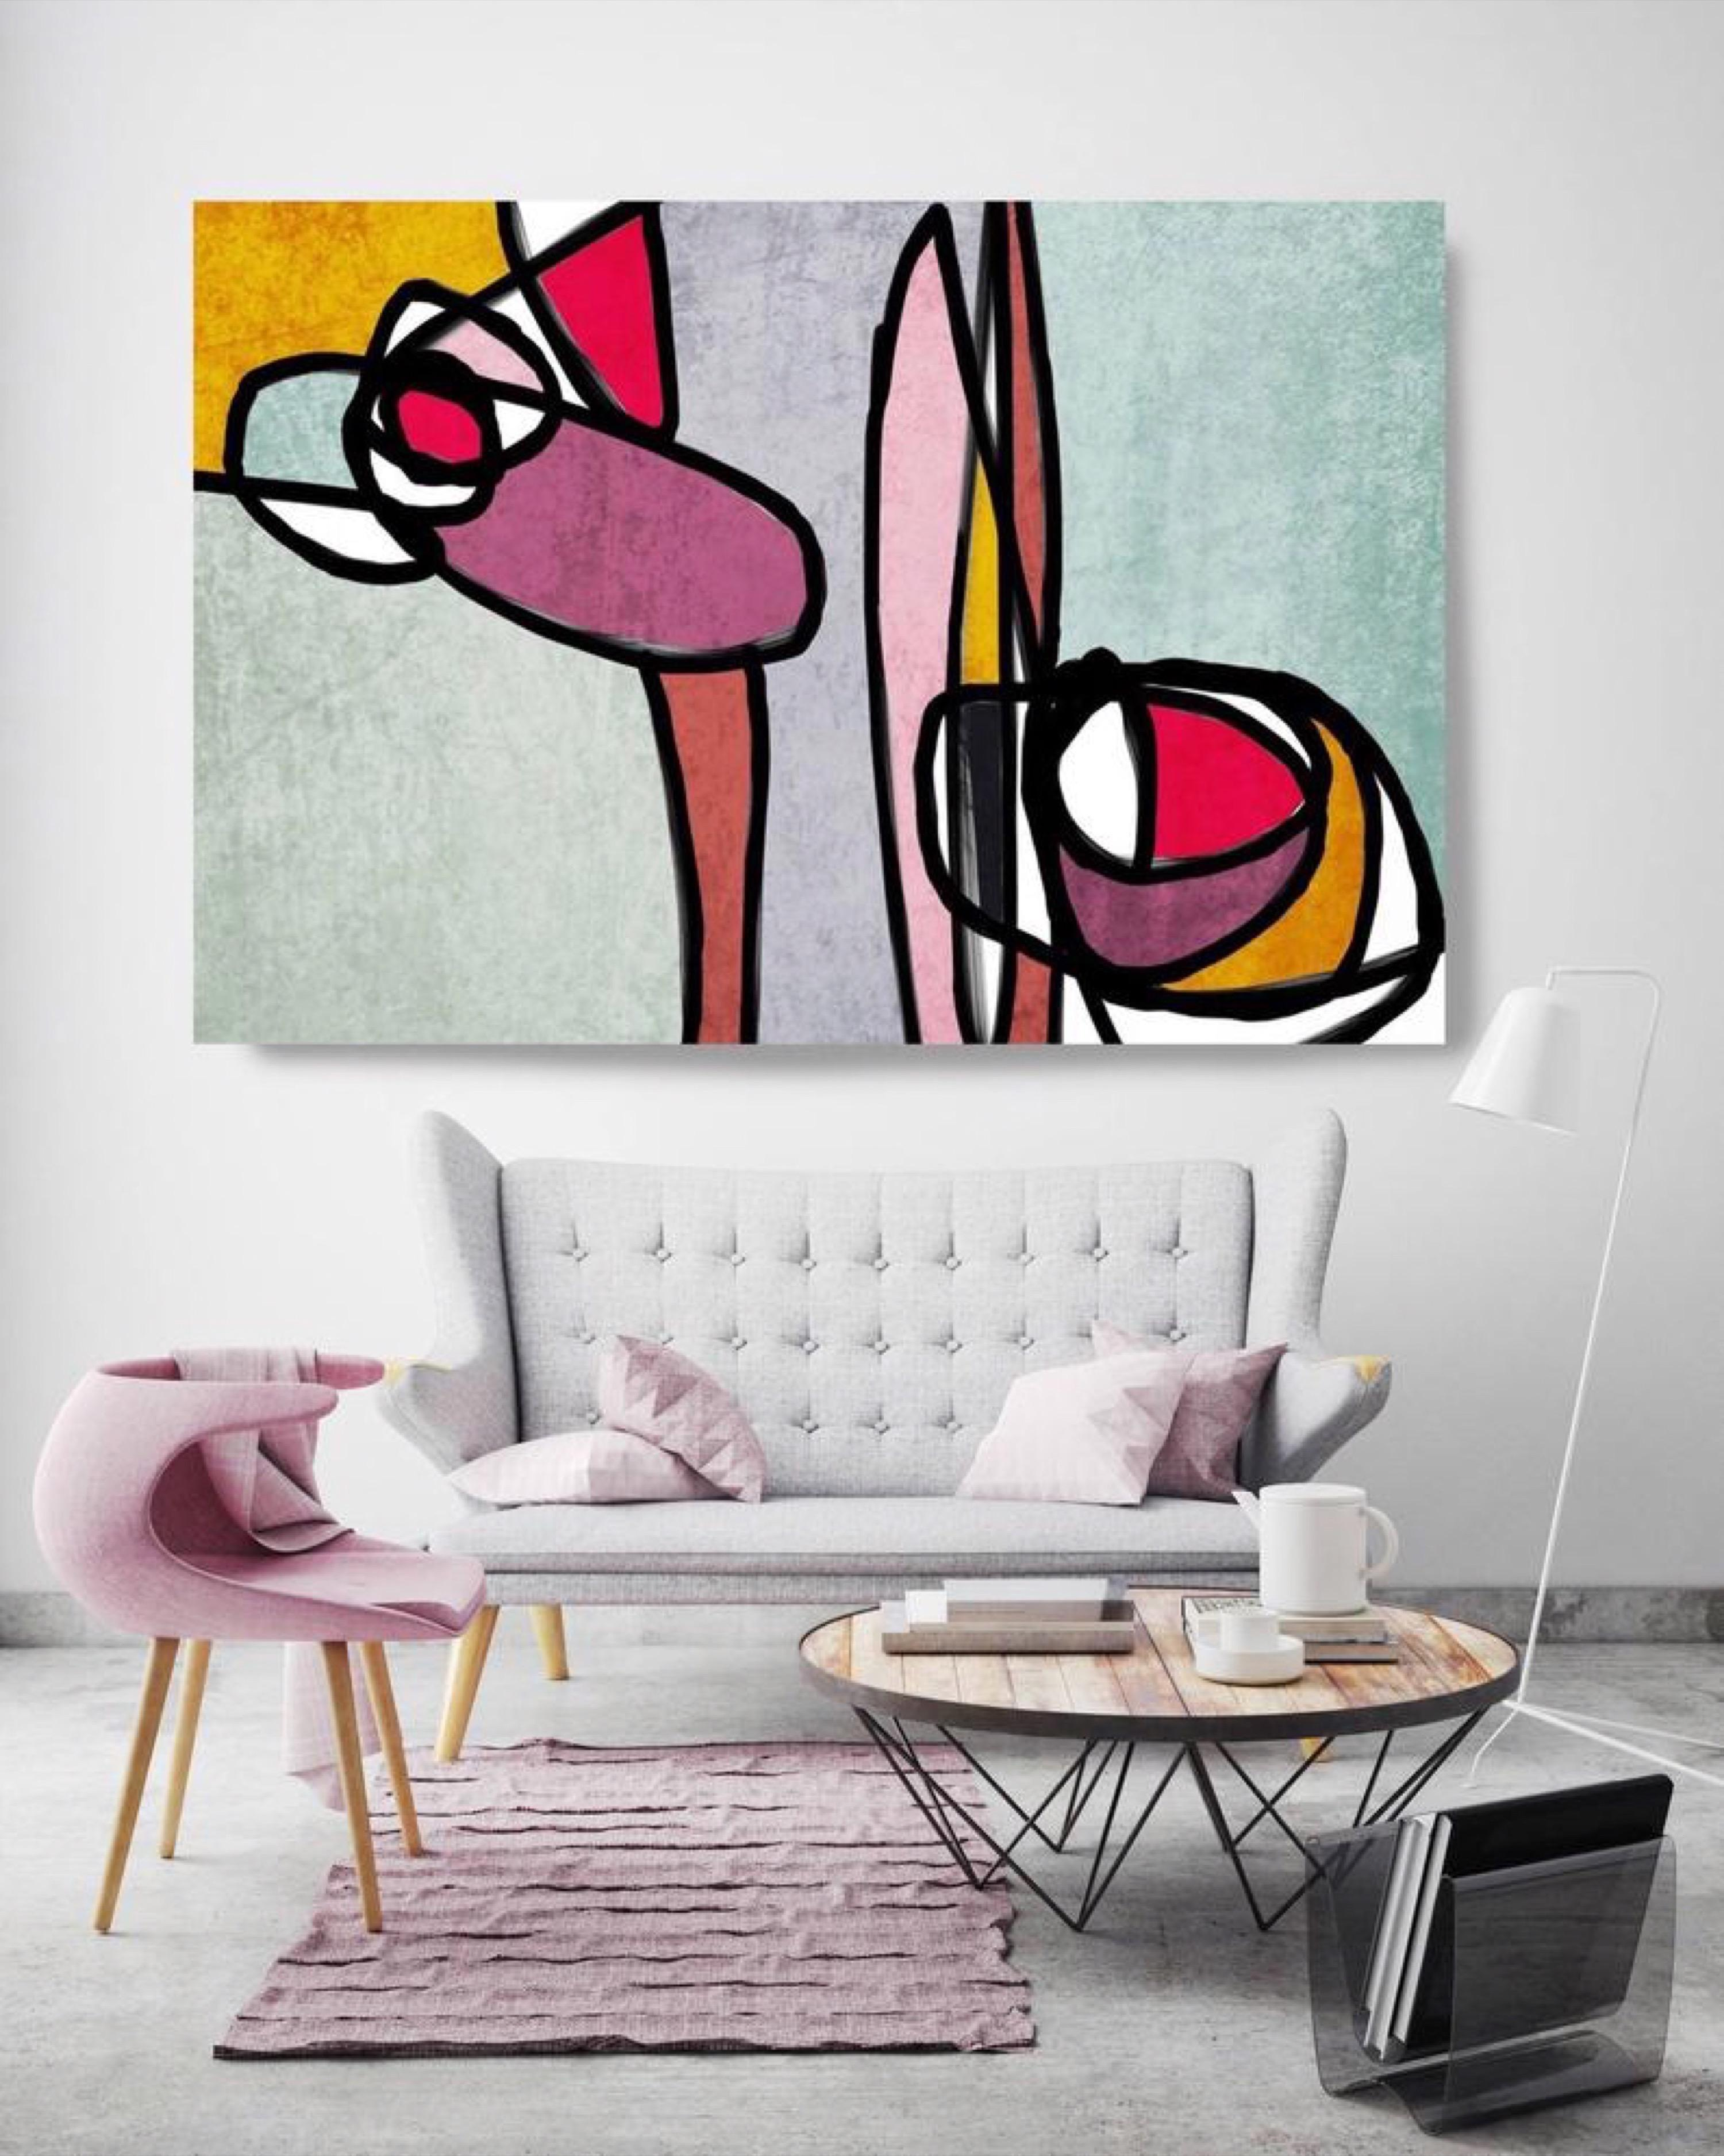 Mid Century Modern Teal Pink Yellow Mixed Media on Canvas